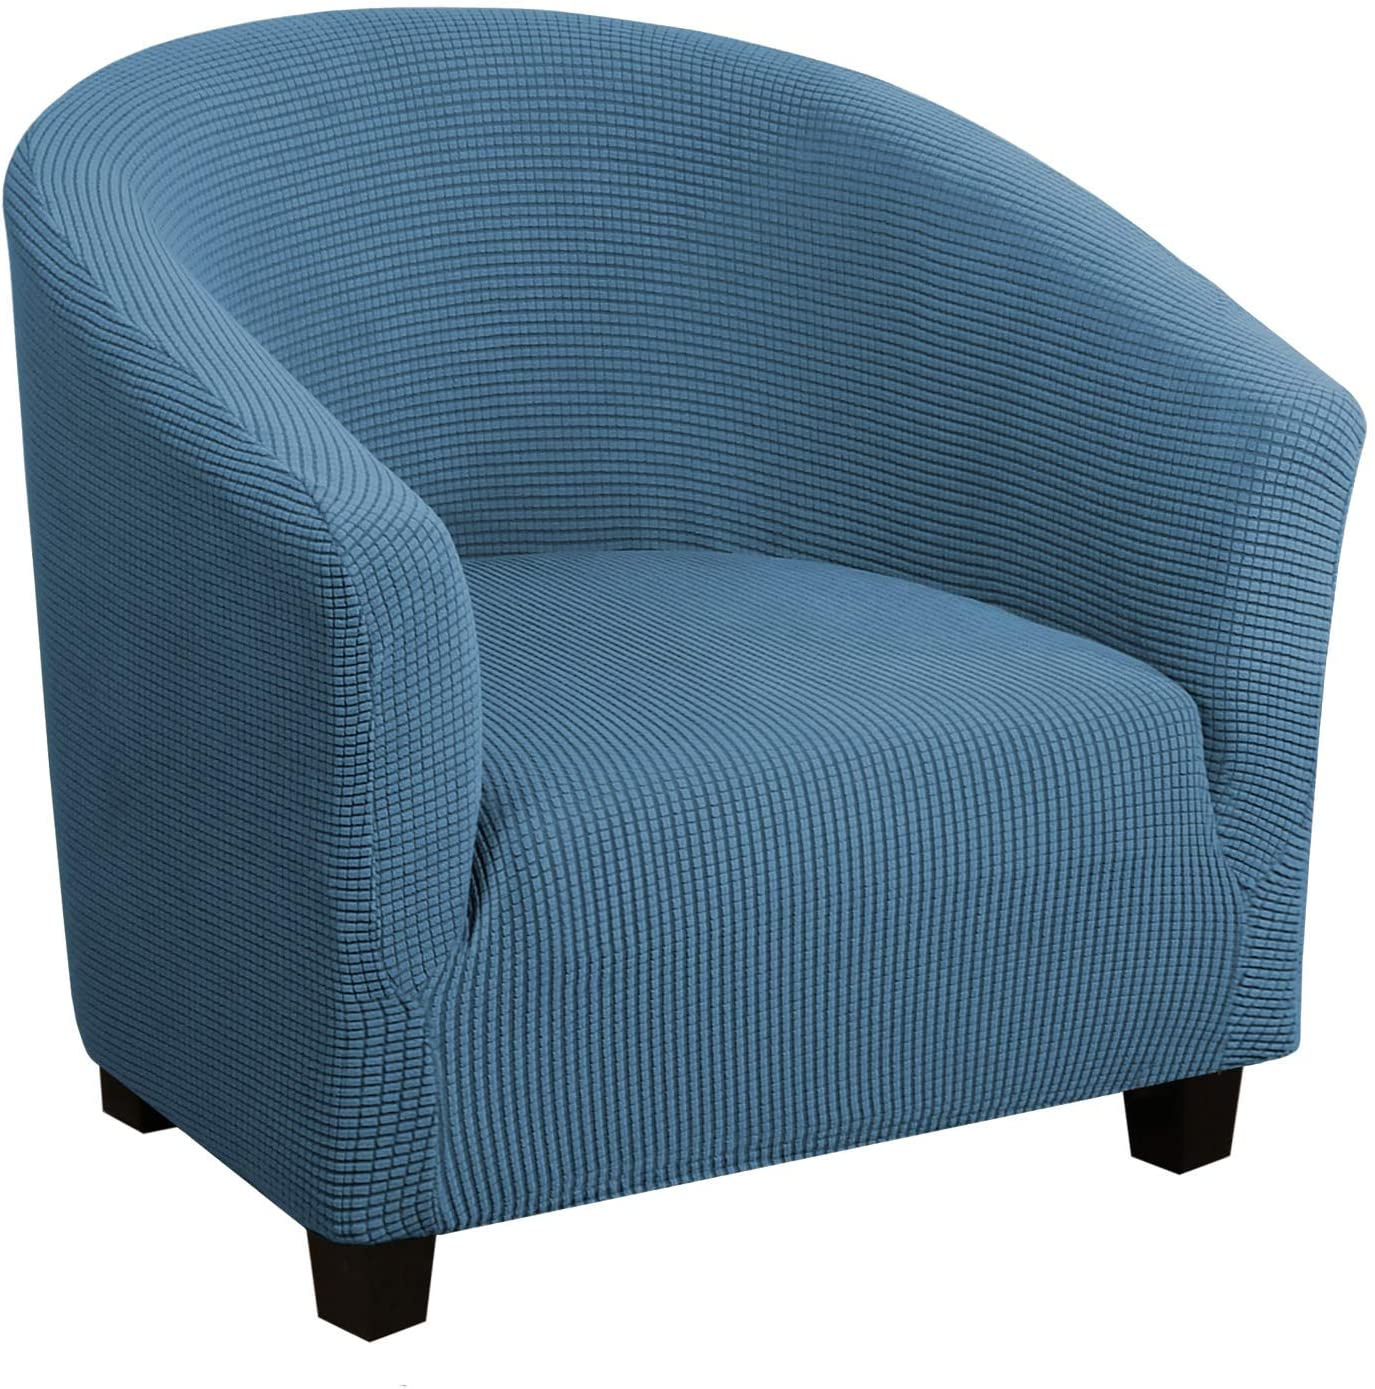 High Stretch Club Chair Cover Tub Chair Cover Armchair Sofa Slipcover with Elastic Bottom Super Soft Jacquard Spandex Skid Resistance Furniture Protector (1 Piece, Dusty Blue)